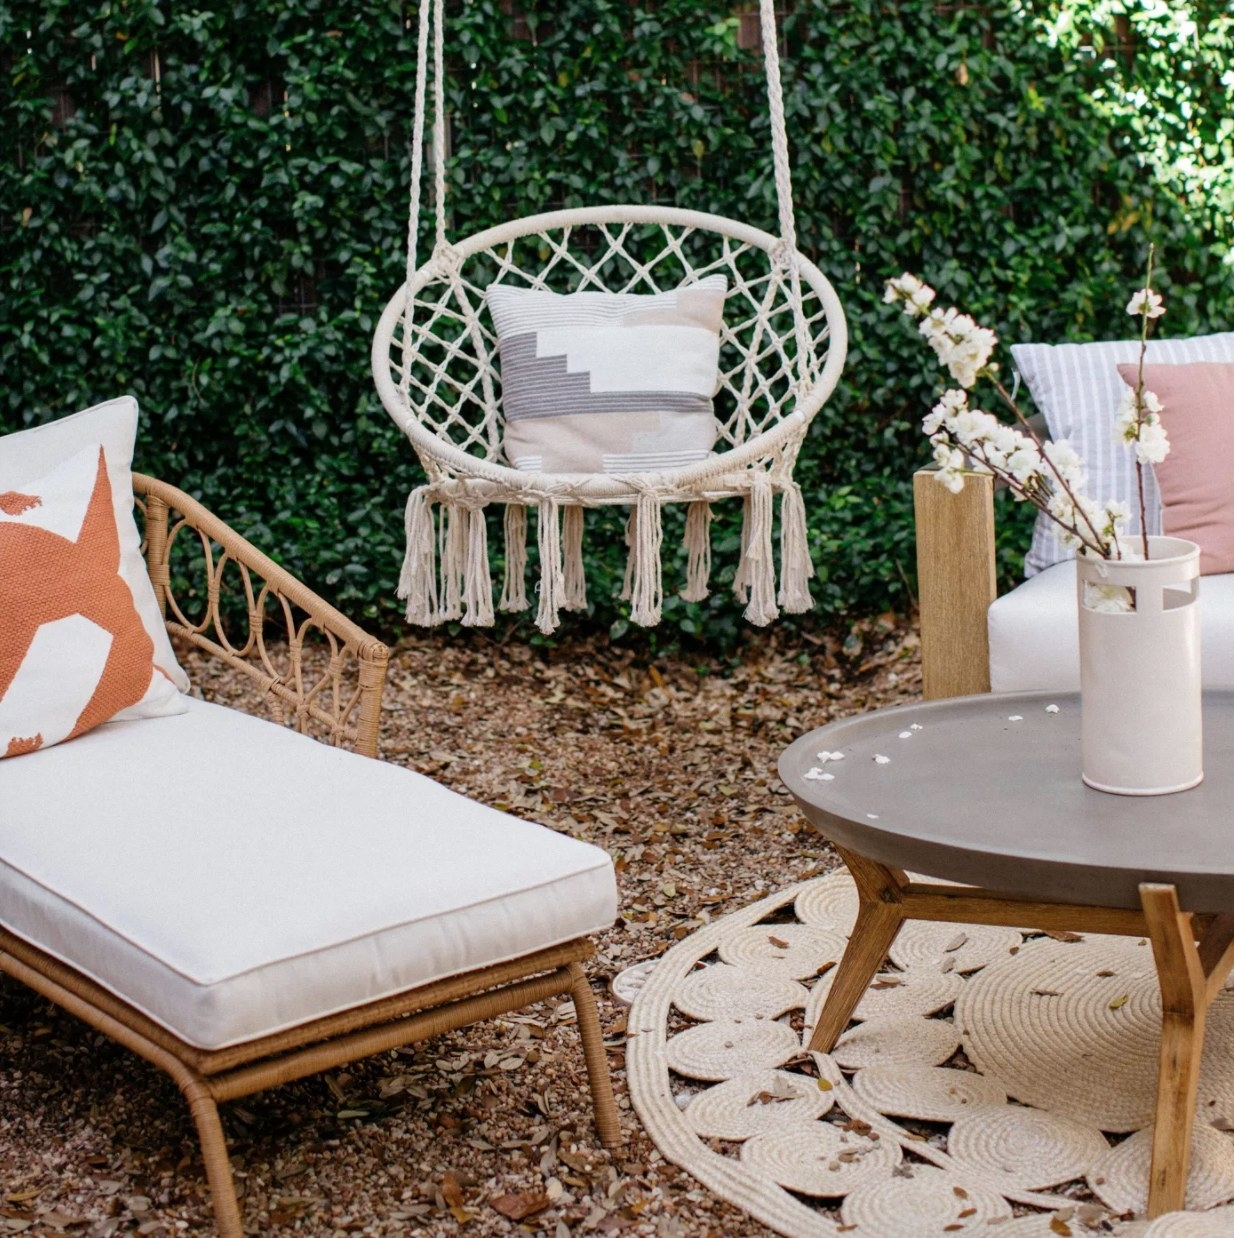 A white macrame hanging chair